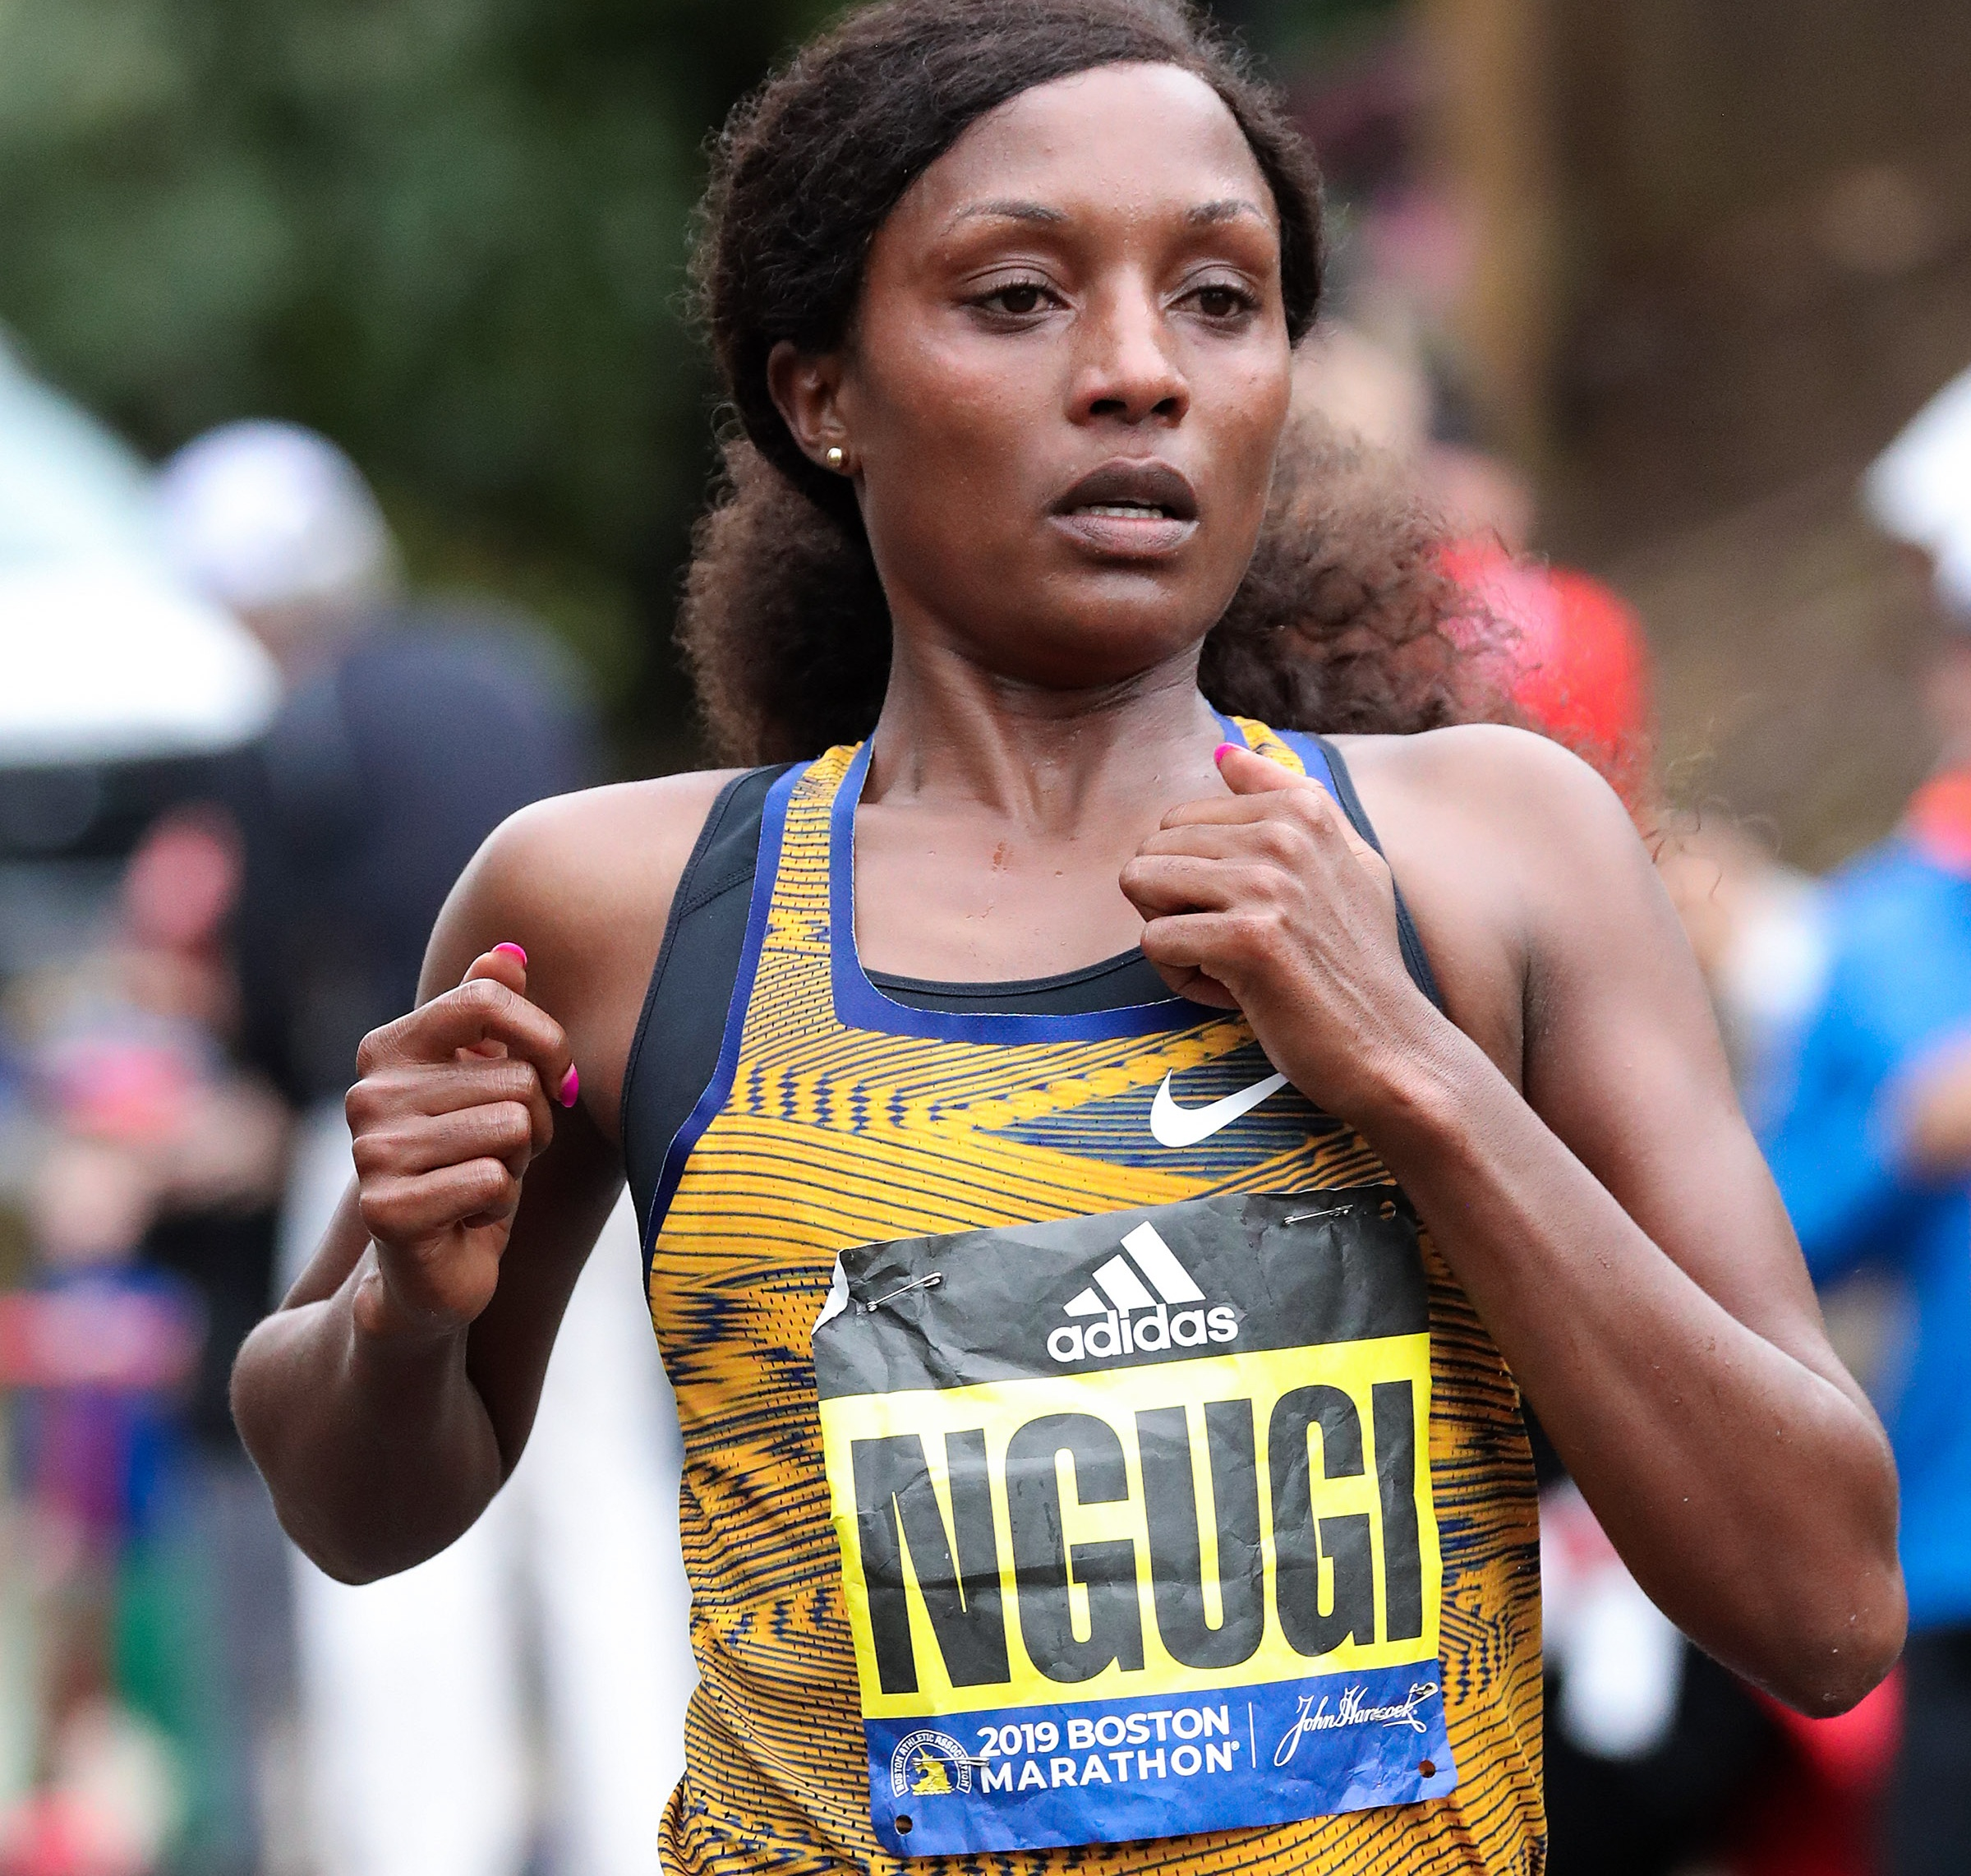 Ngugi was seventh in 2:28:33 at the 2019 Boston Marathon, her debut at the distance.